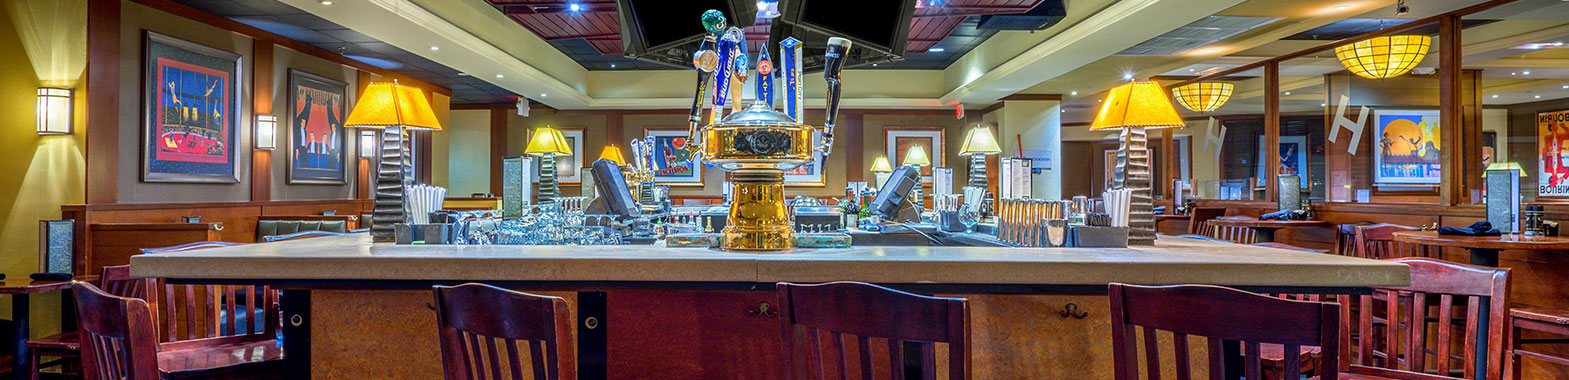 Crowne Plaza Dulles Airport Hotel Restaurant and Bar